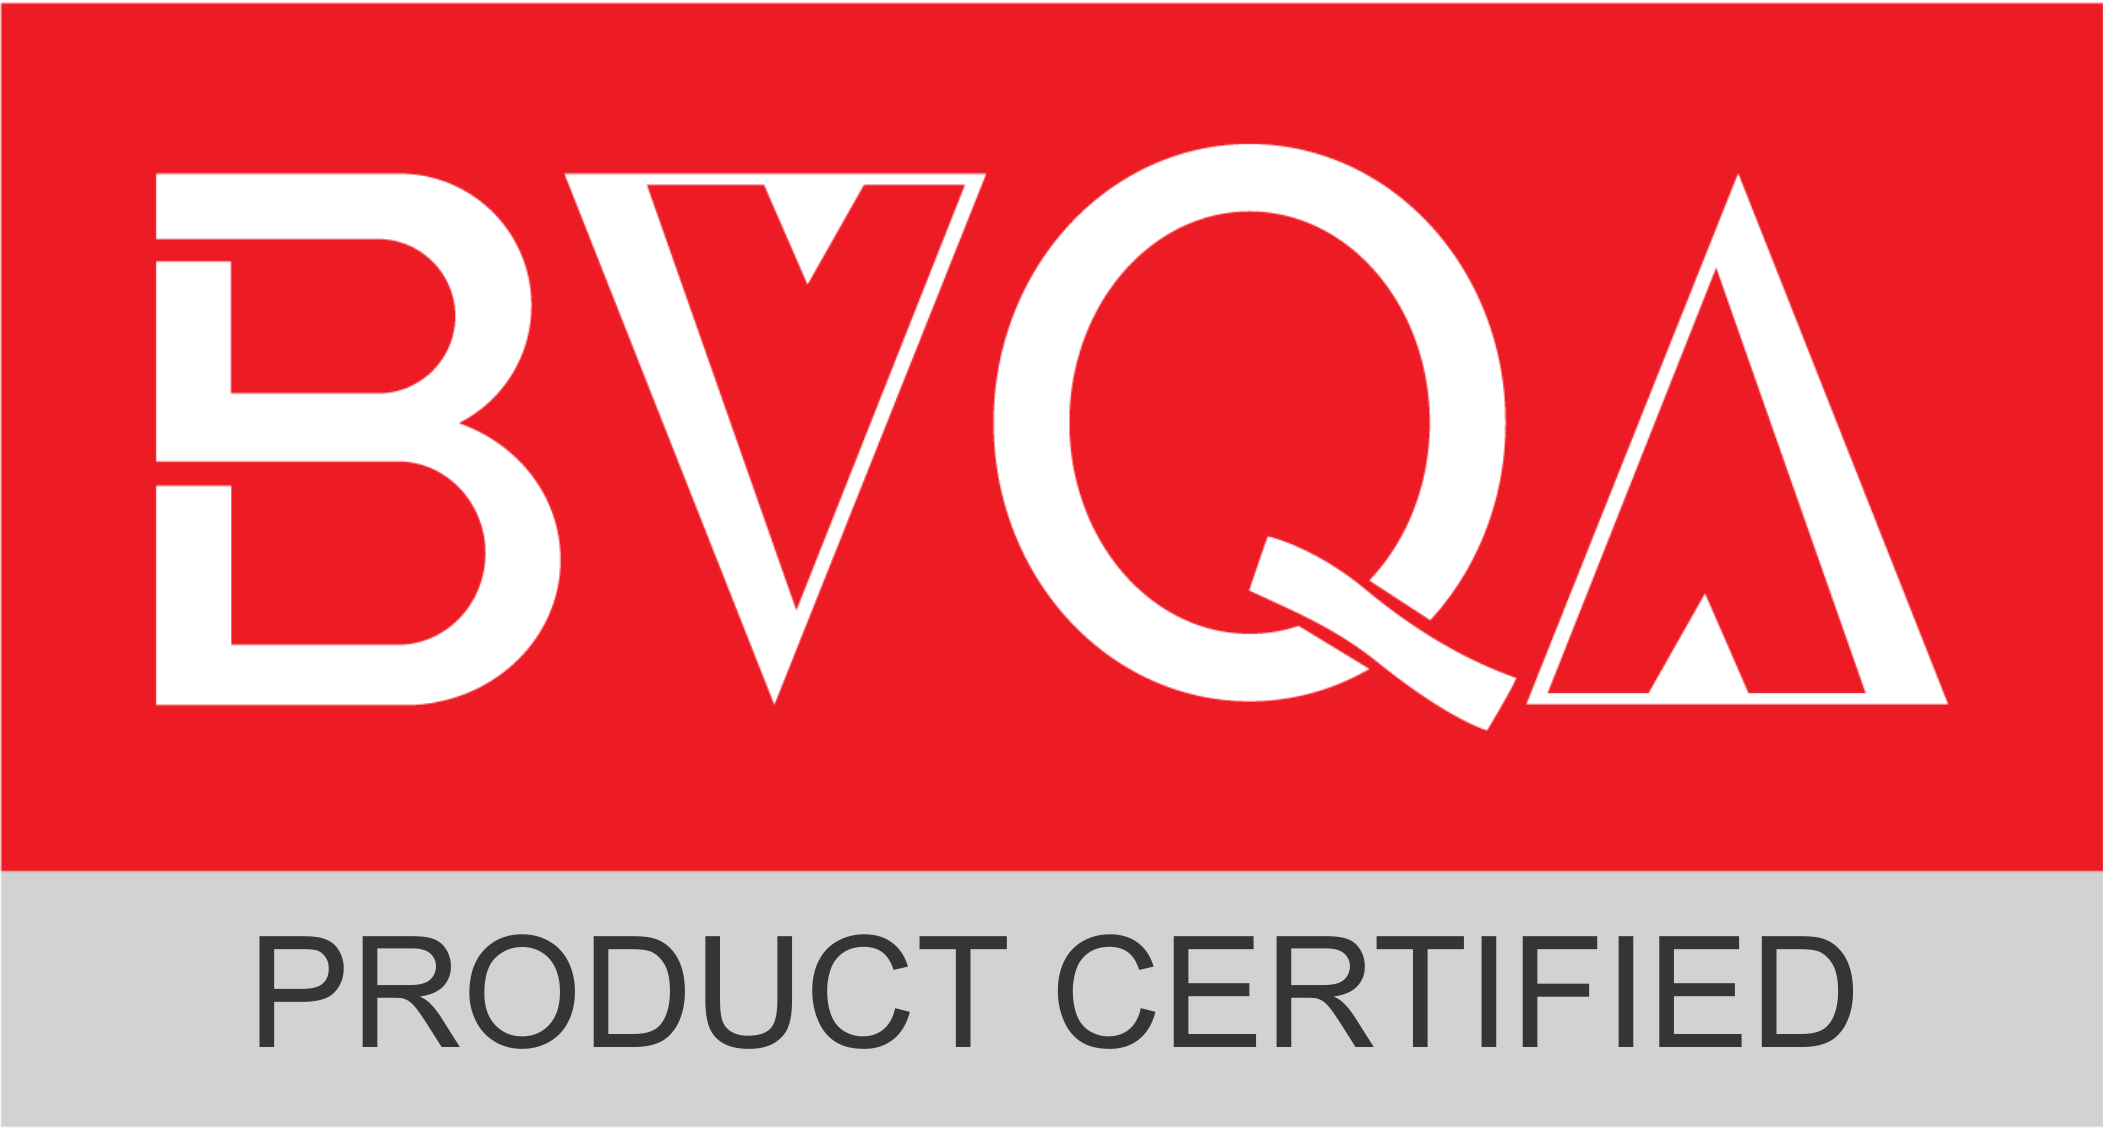 BVQA Vietnam was licensed to issue Product Certification of Construction materials